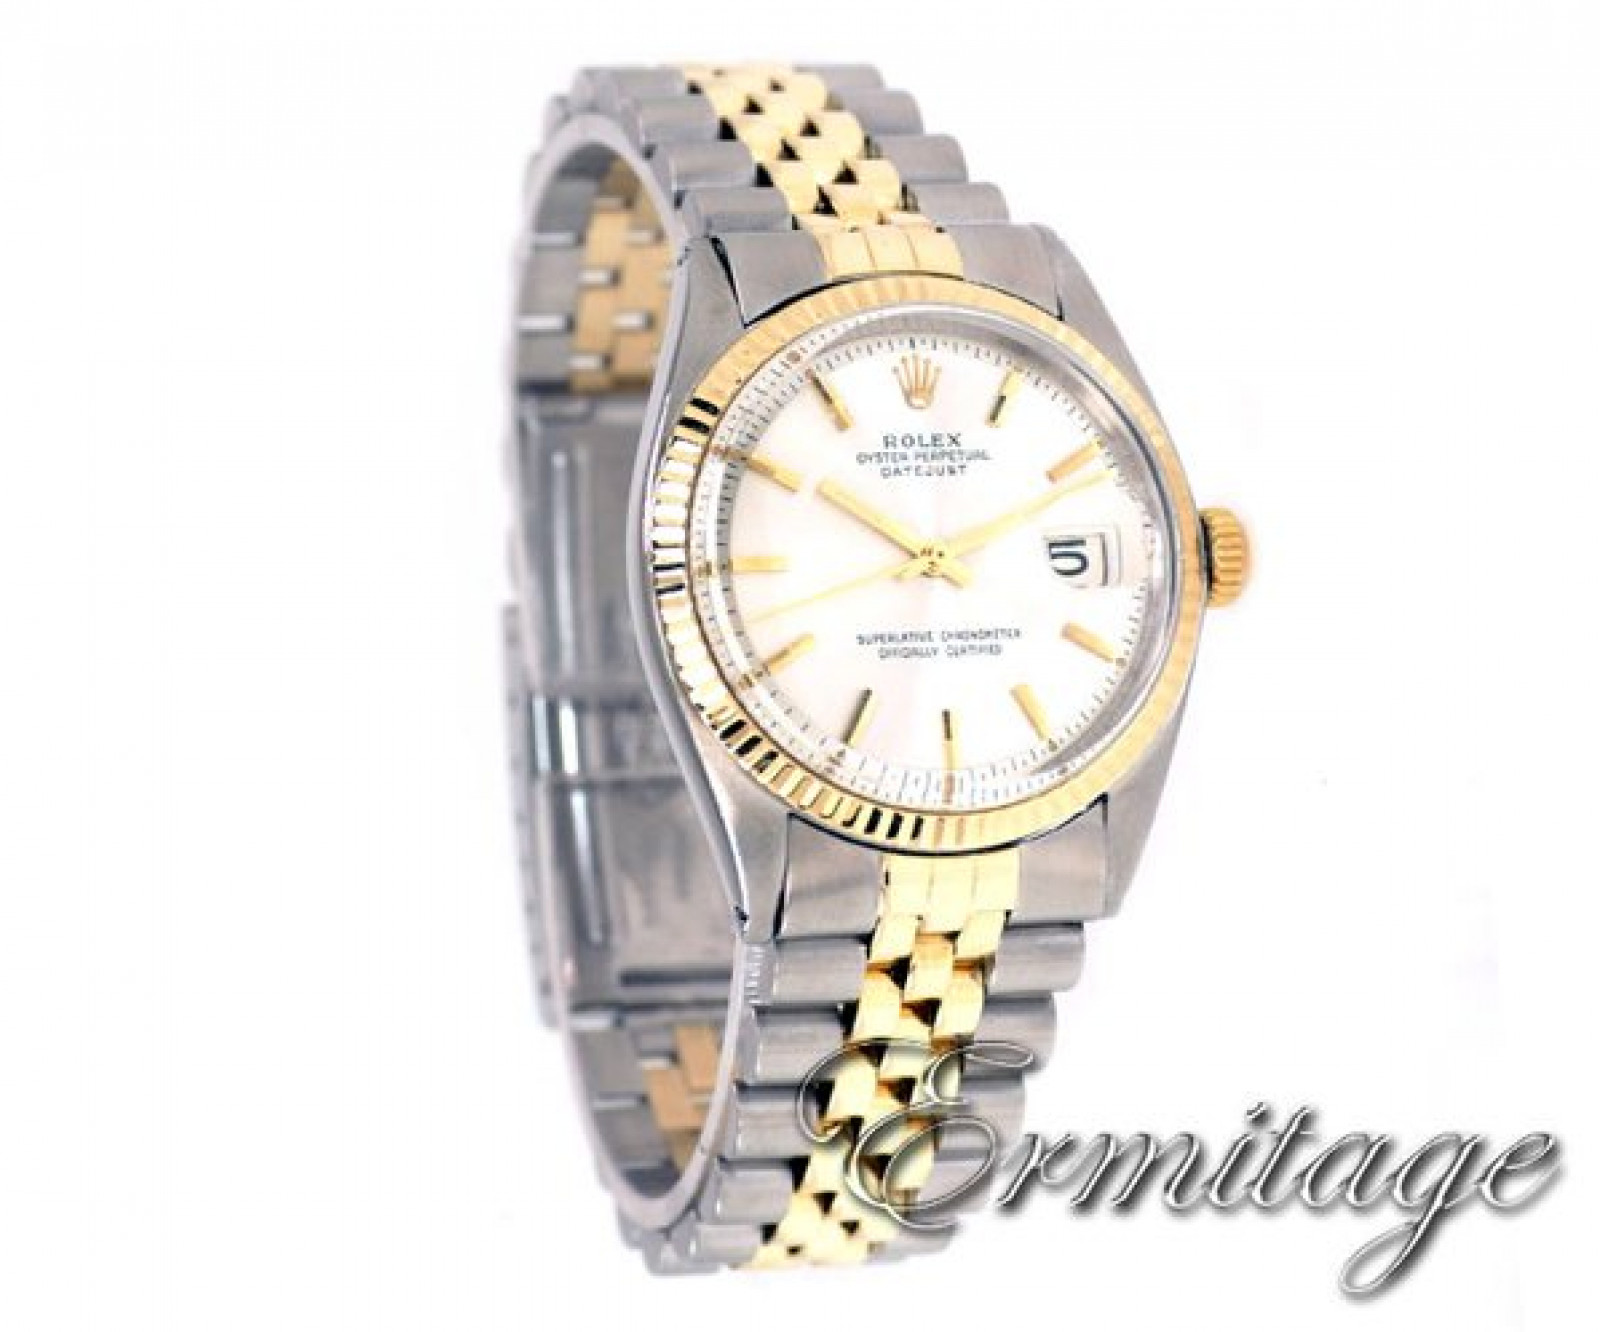 Vintage Rare Rolex Datejust 1601 Gold & Steel Year 1964